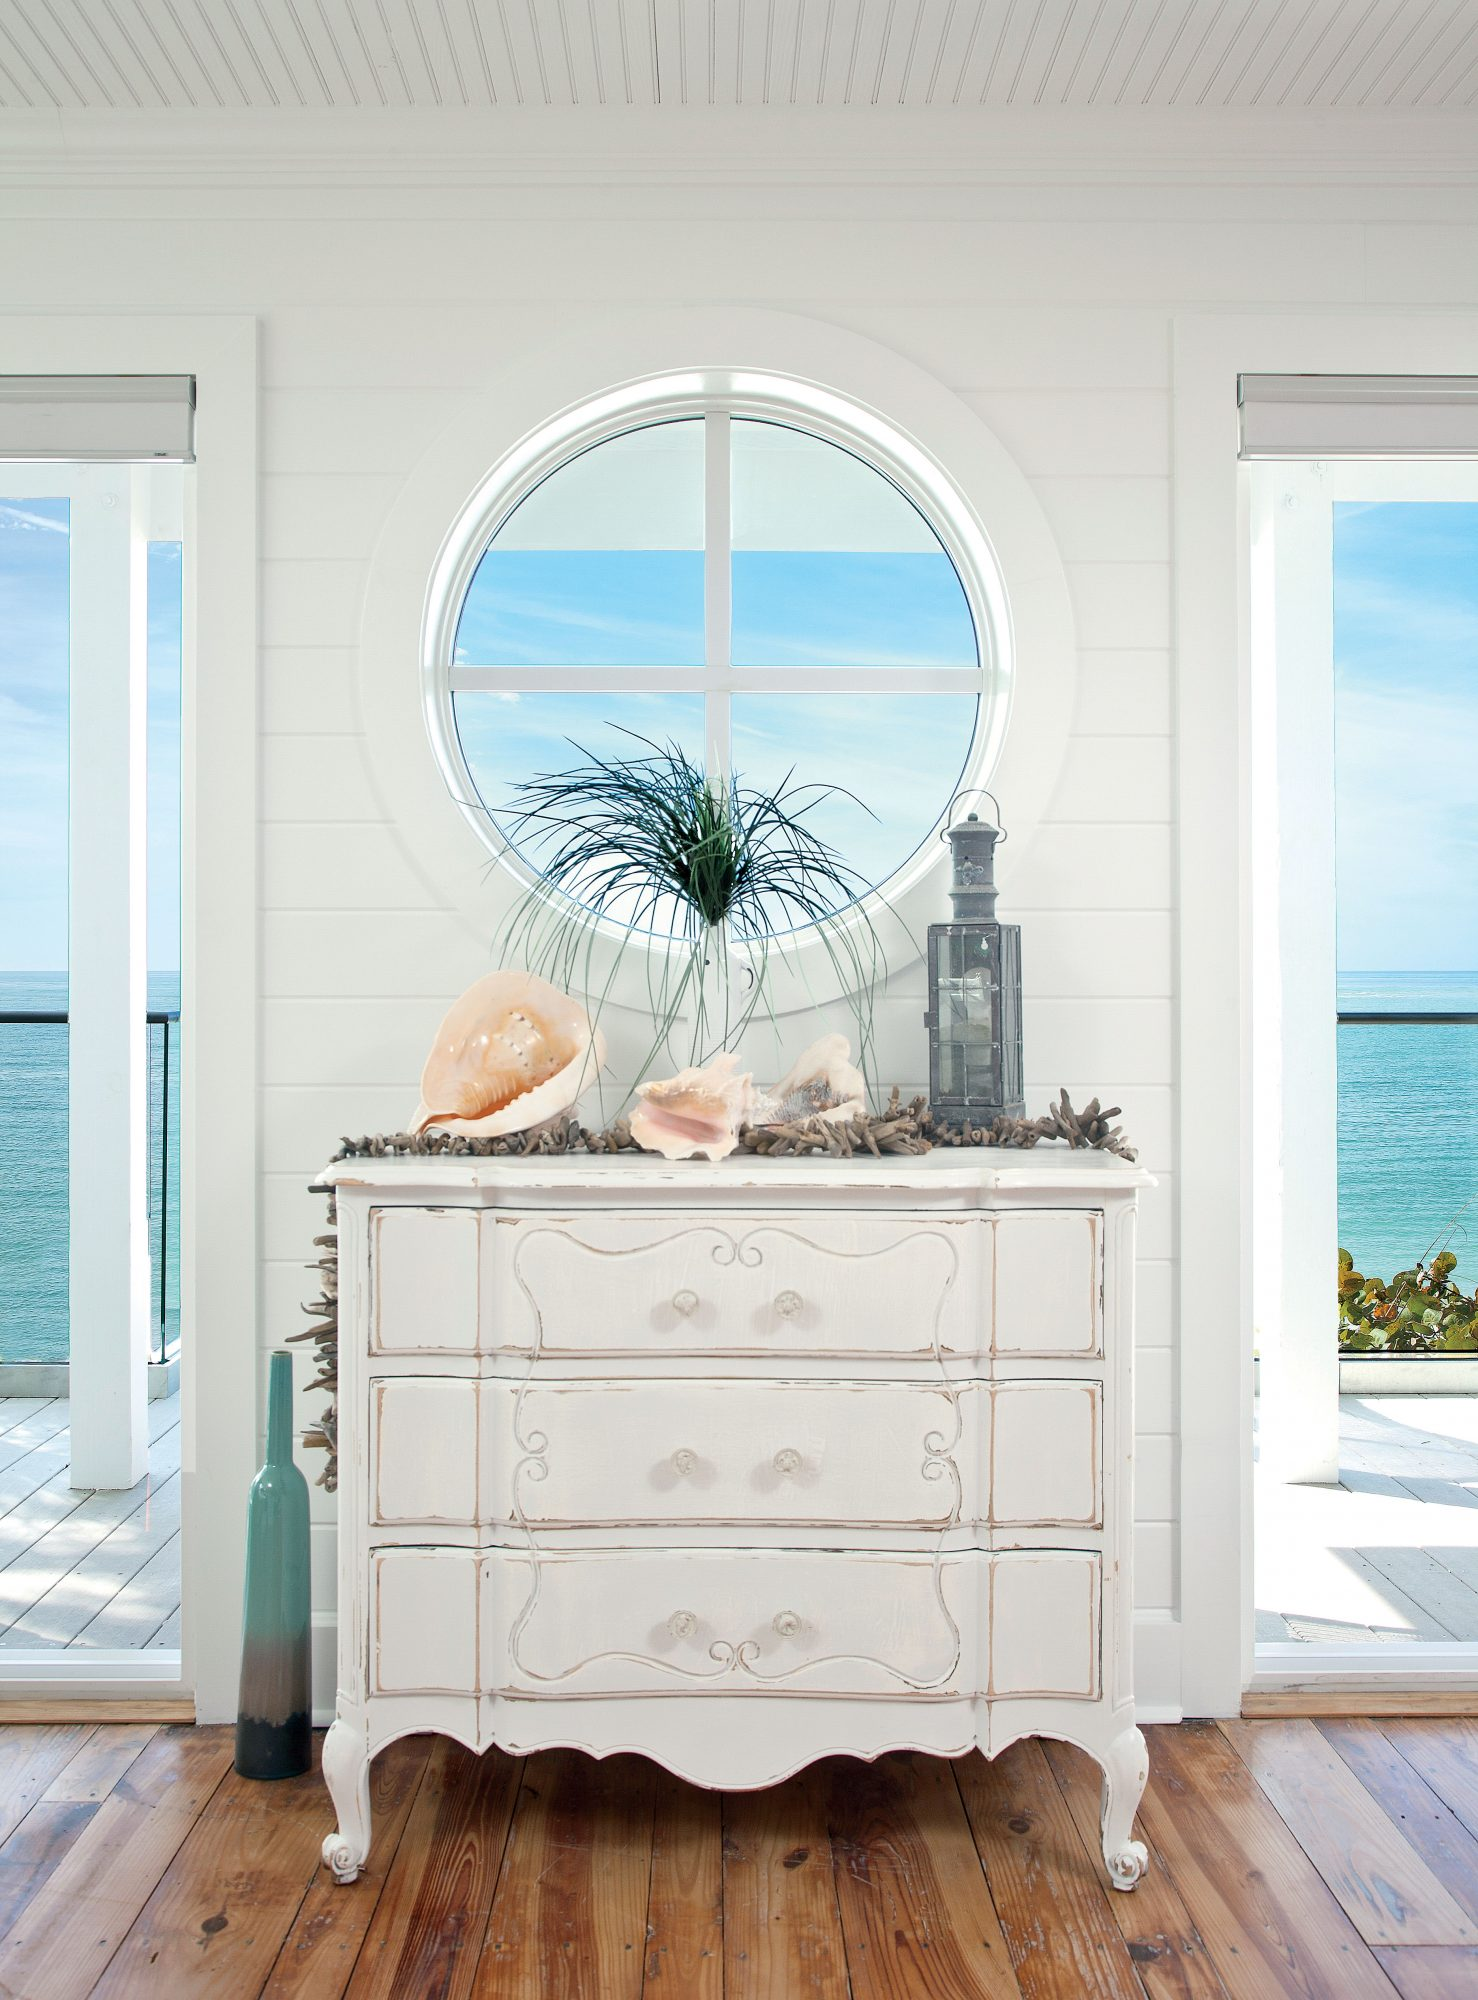 This vignette—in a bright beach house on Anna Maria Island, Florida—cleverly features a circular window in place of a more traditional mirror or piece of art. The buffet's playful curves and distressed finish provide a nice contrast to the clean, geometri